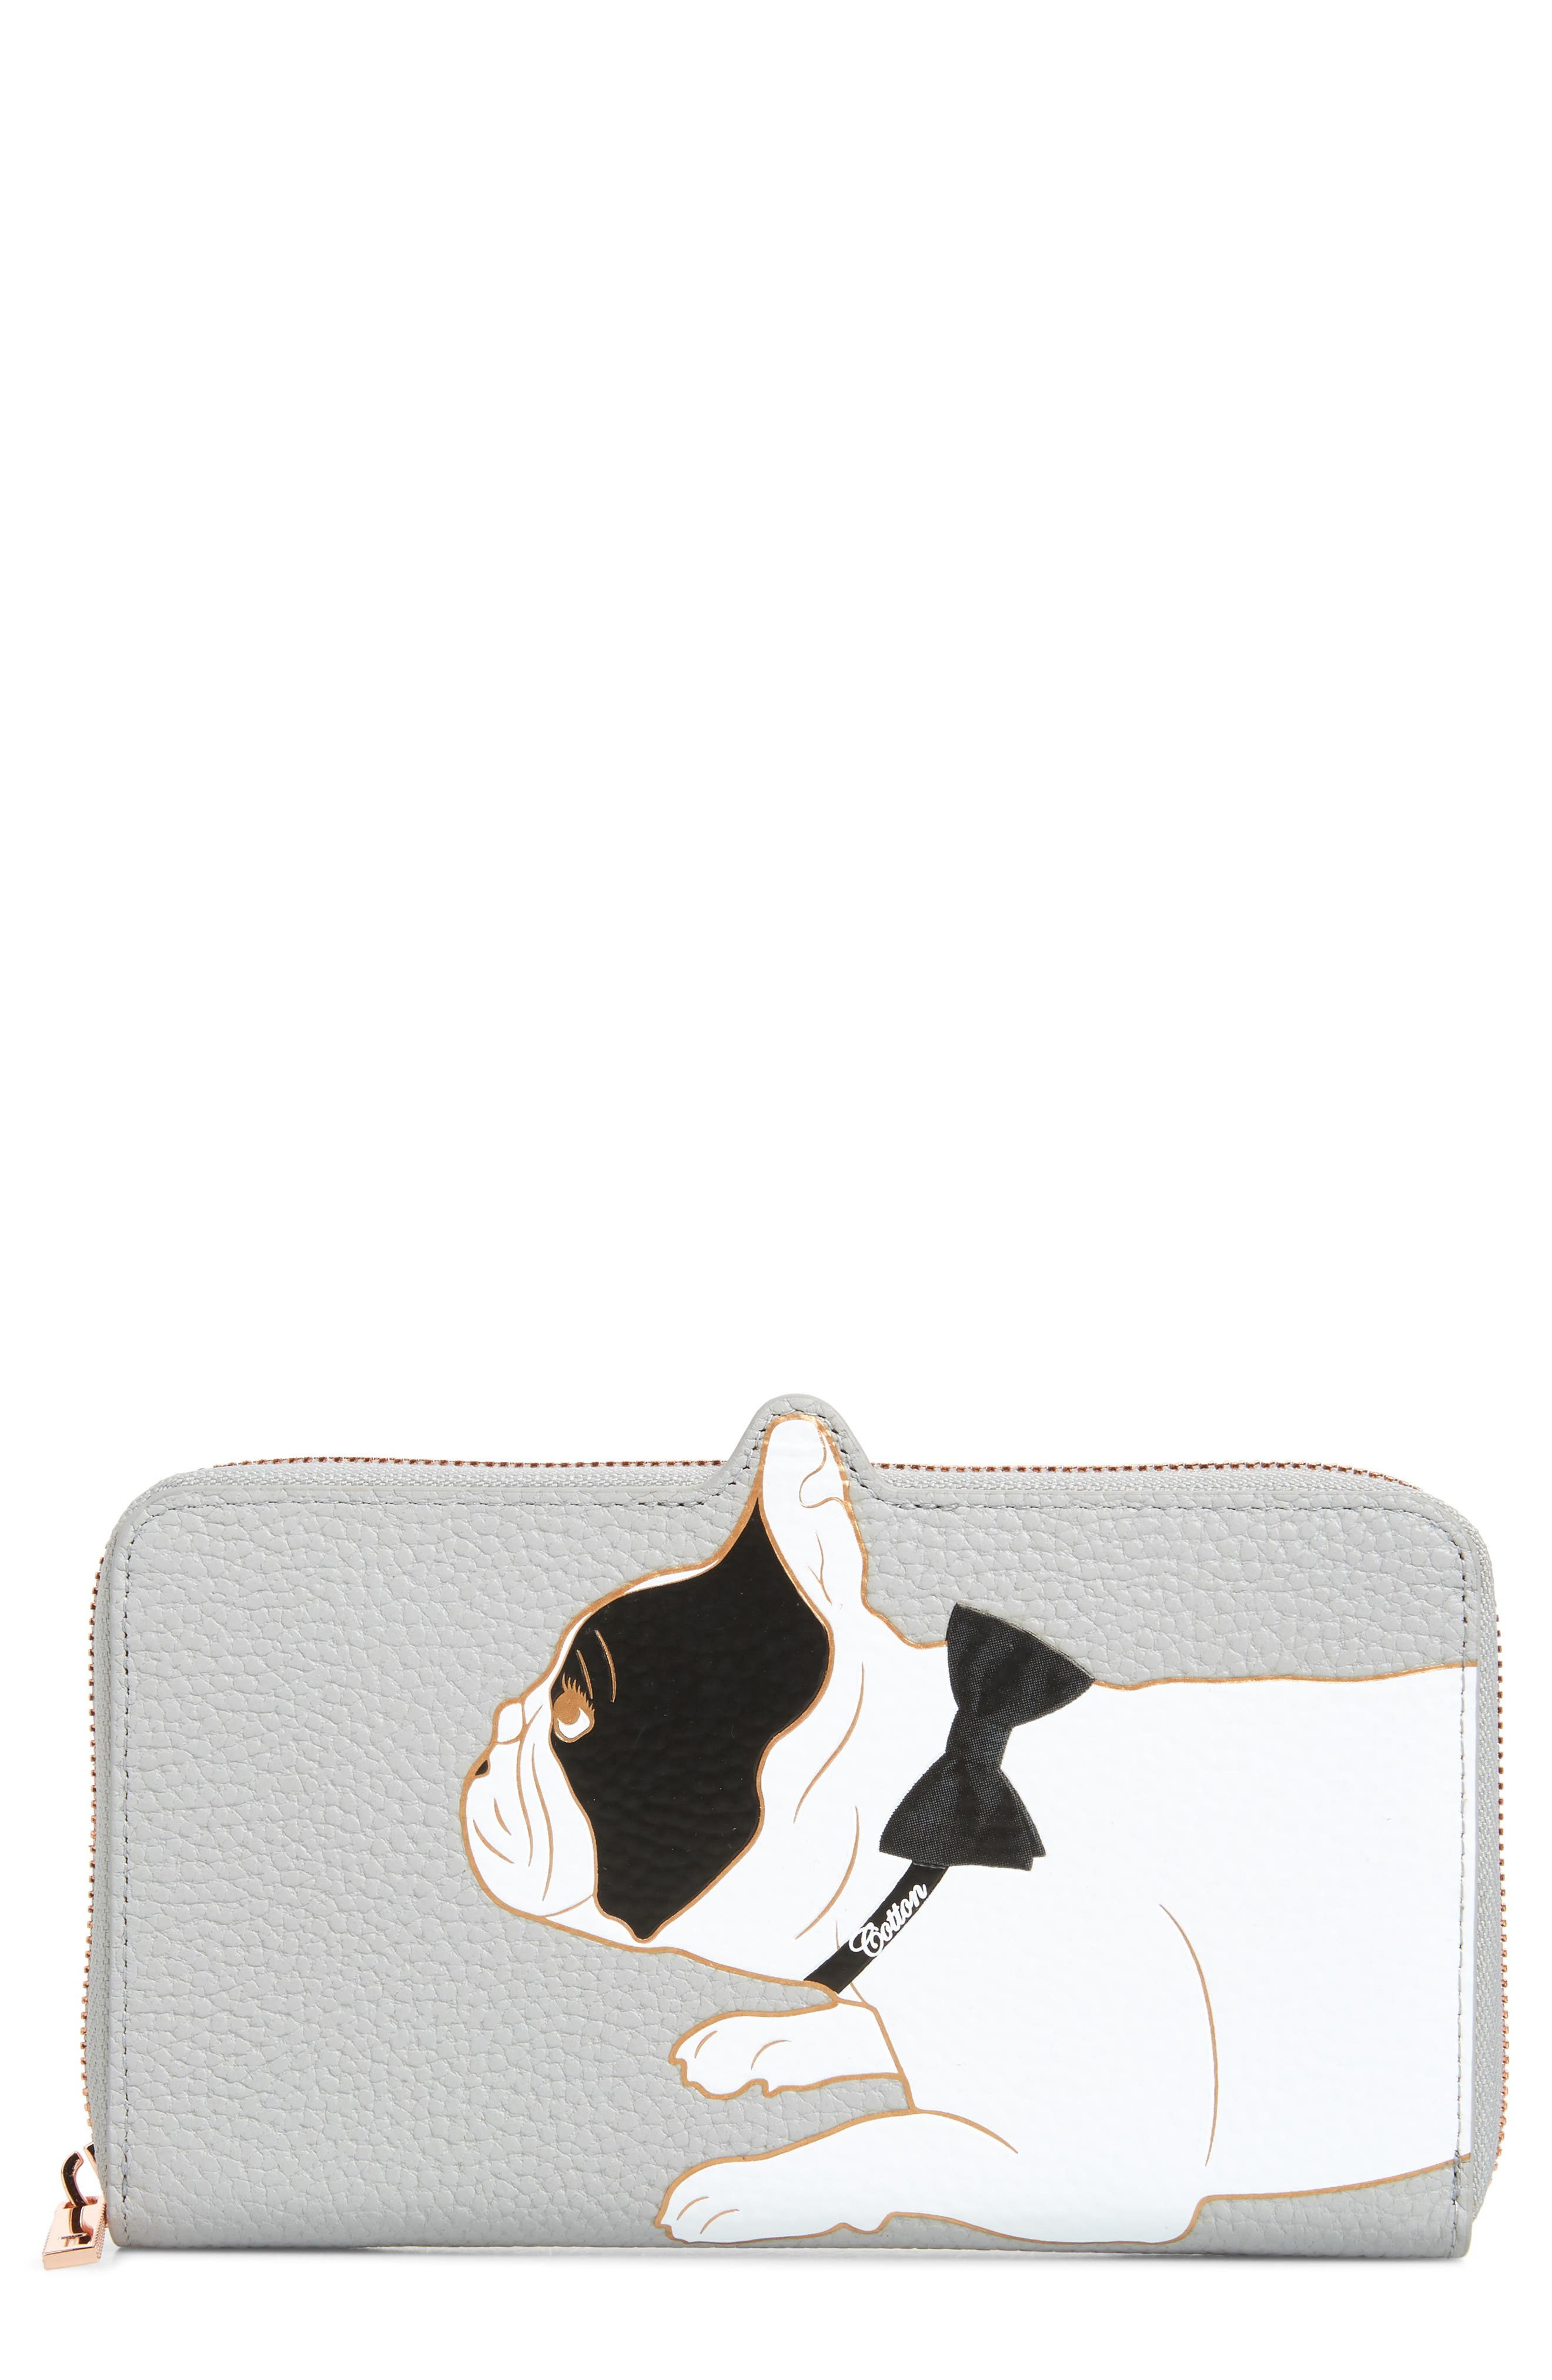 TED BAKER LONDON Rumi Cotton Dog Zip Around Wallet, Main, color, GREY